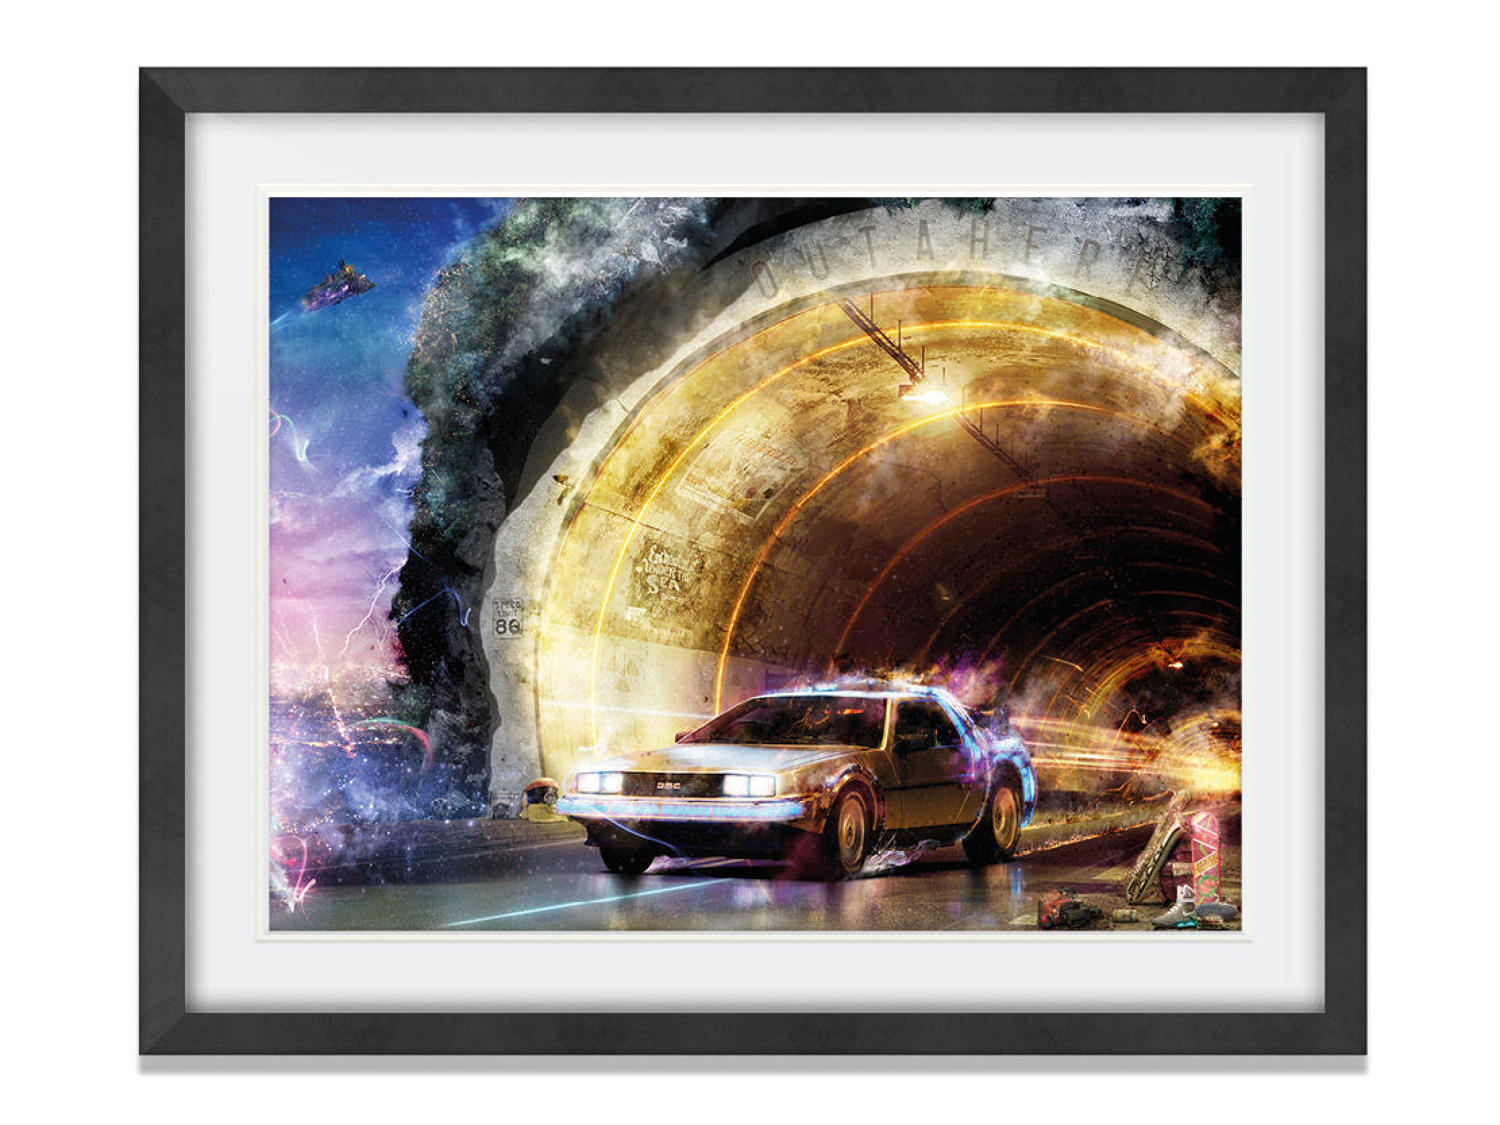 Outahere (Back to the Future) Framed Art Print by Mark Davies